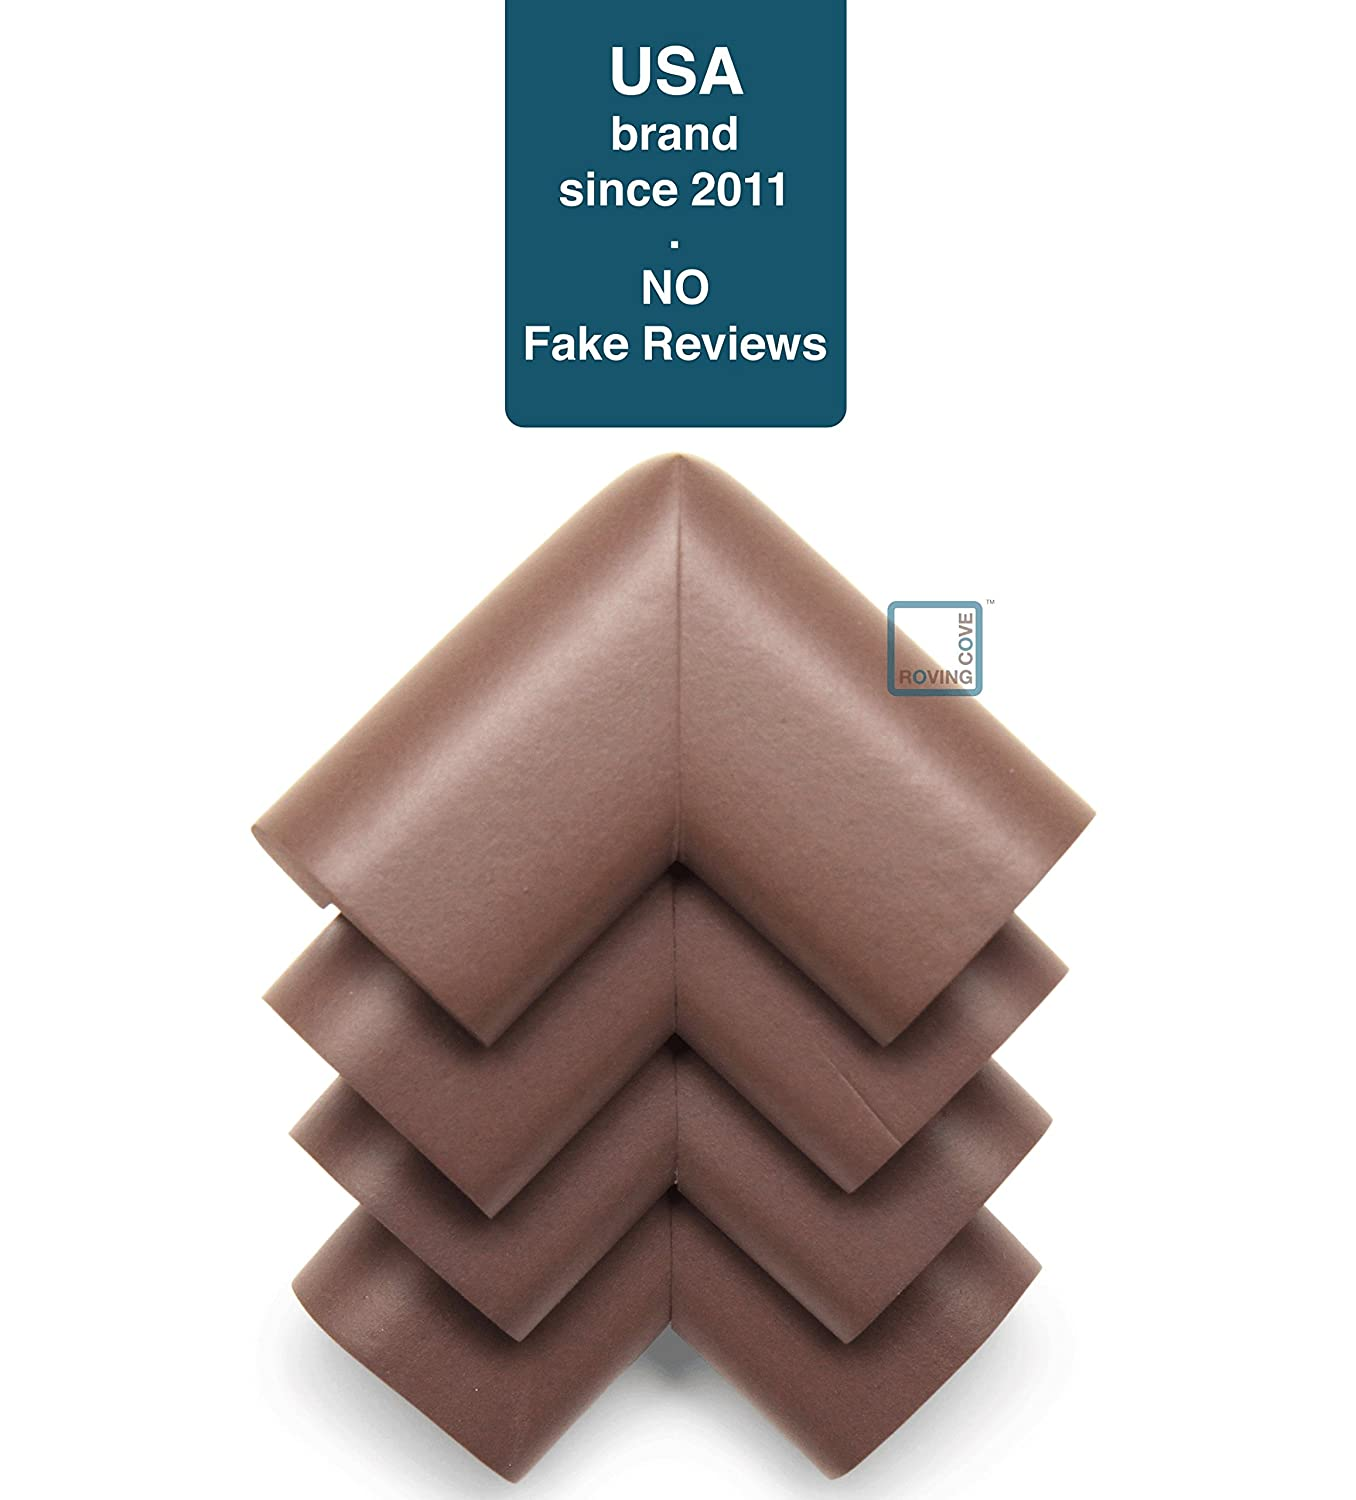 PRE-TAPED CORNERS; Child Safety Home Safety Furniture Bumpers and Table Edge Corner Protectors VALUE PACK COFFEE; Premium Childproofing Corner Guard Roving Cove 4-Piece Safe Corner Cushion